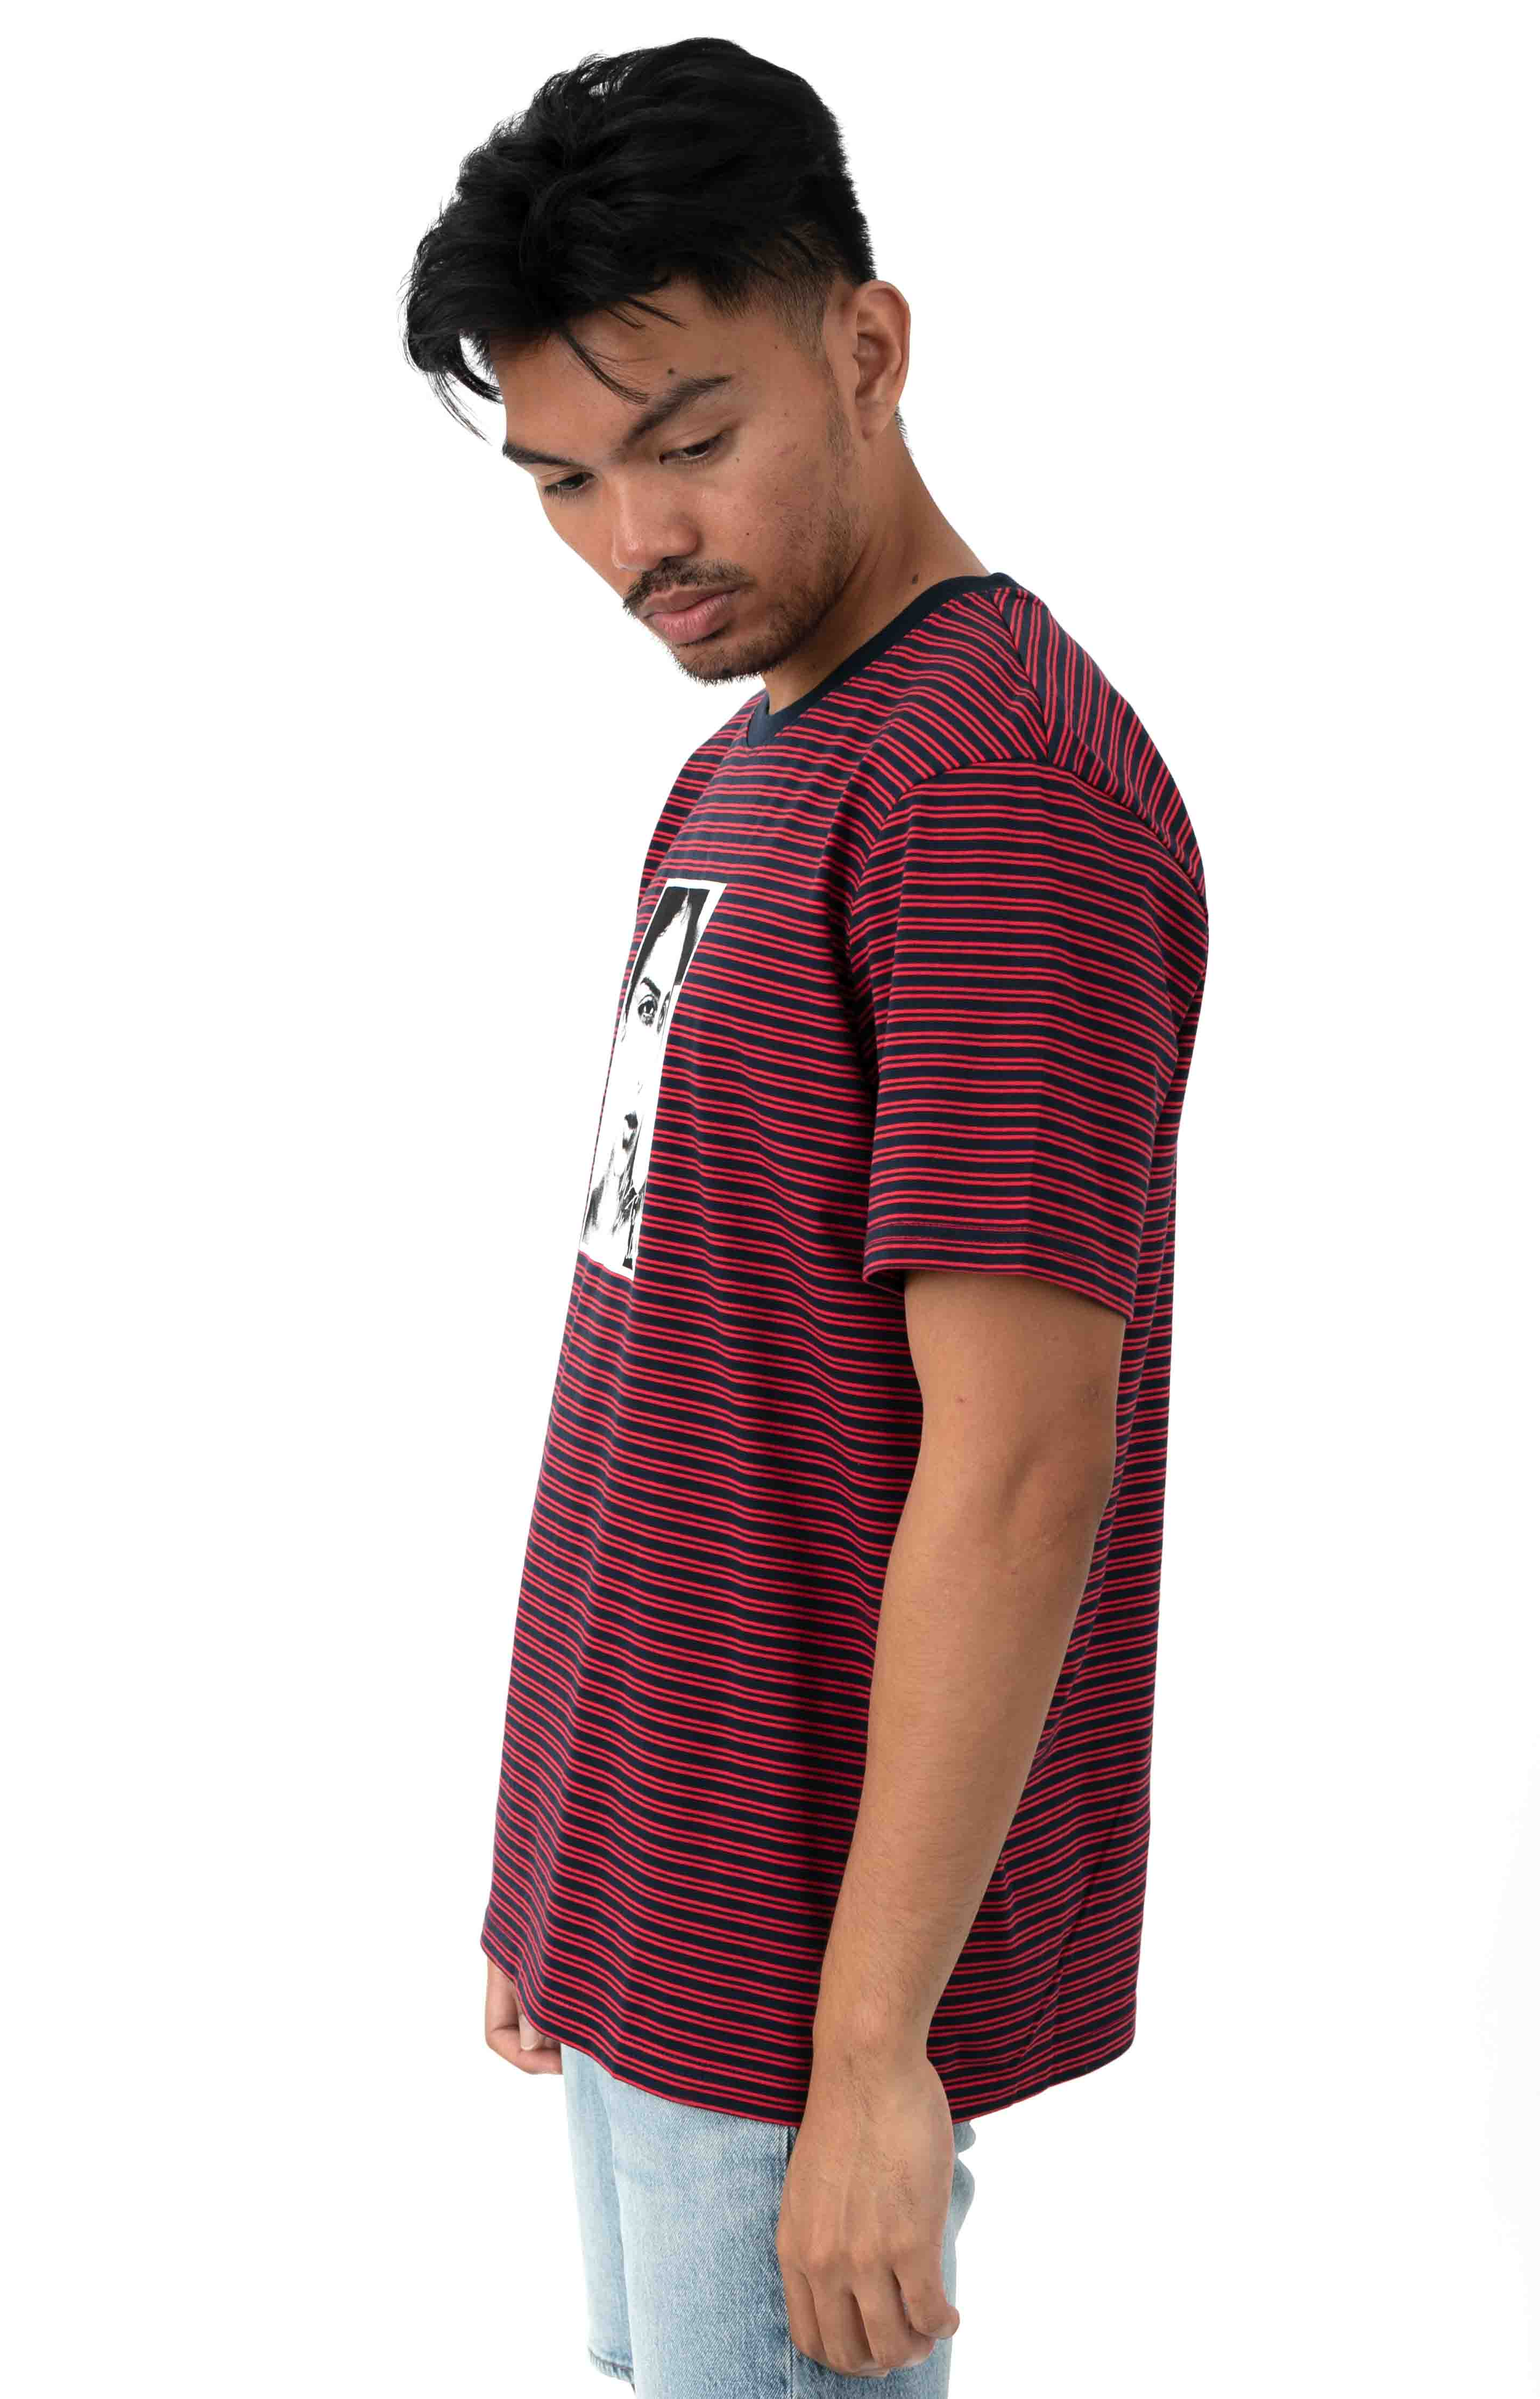 Molly Striped T-Shirt - True Red 2